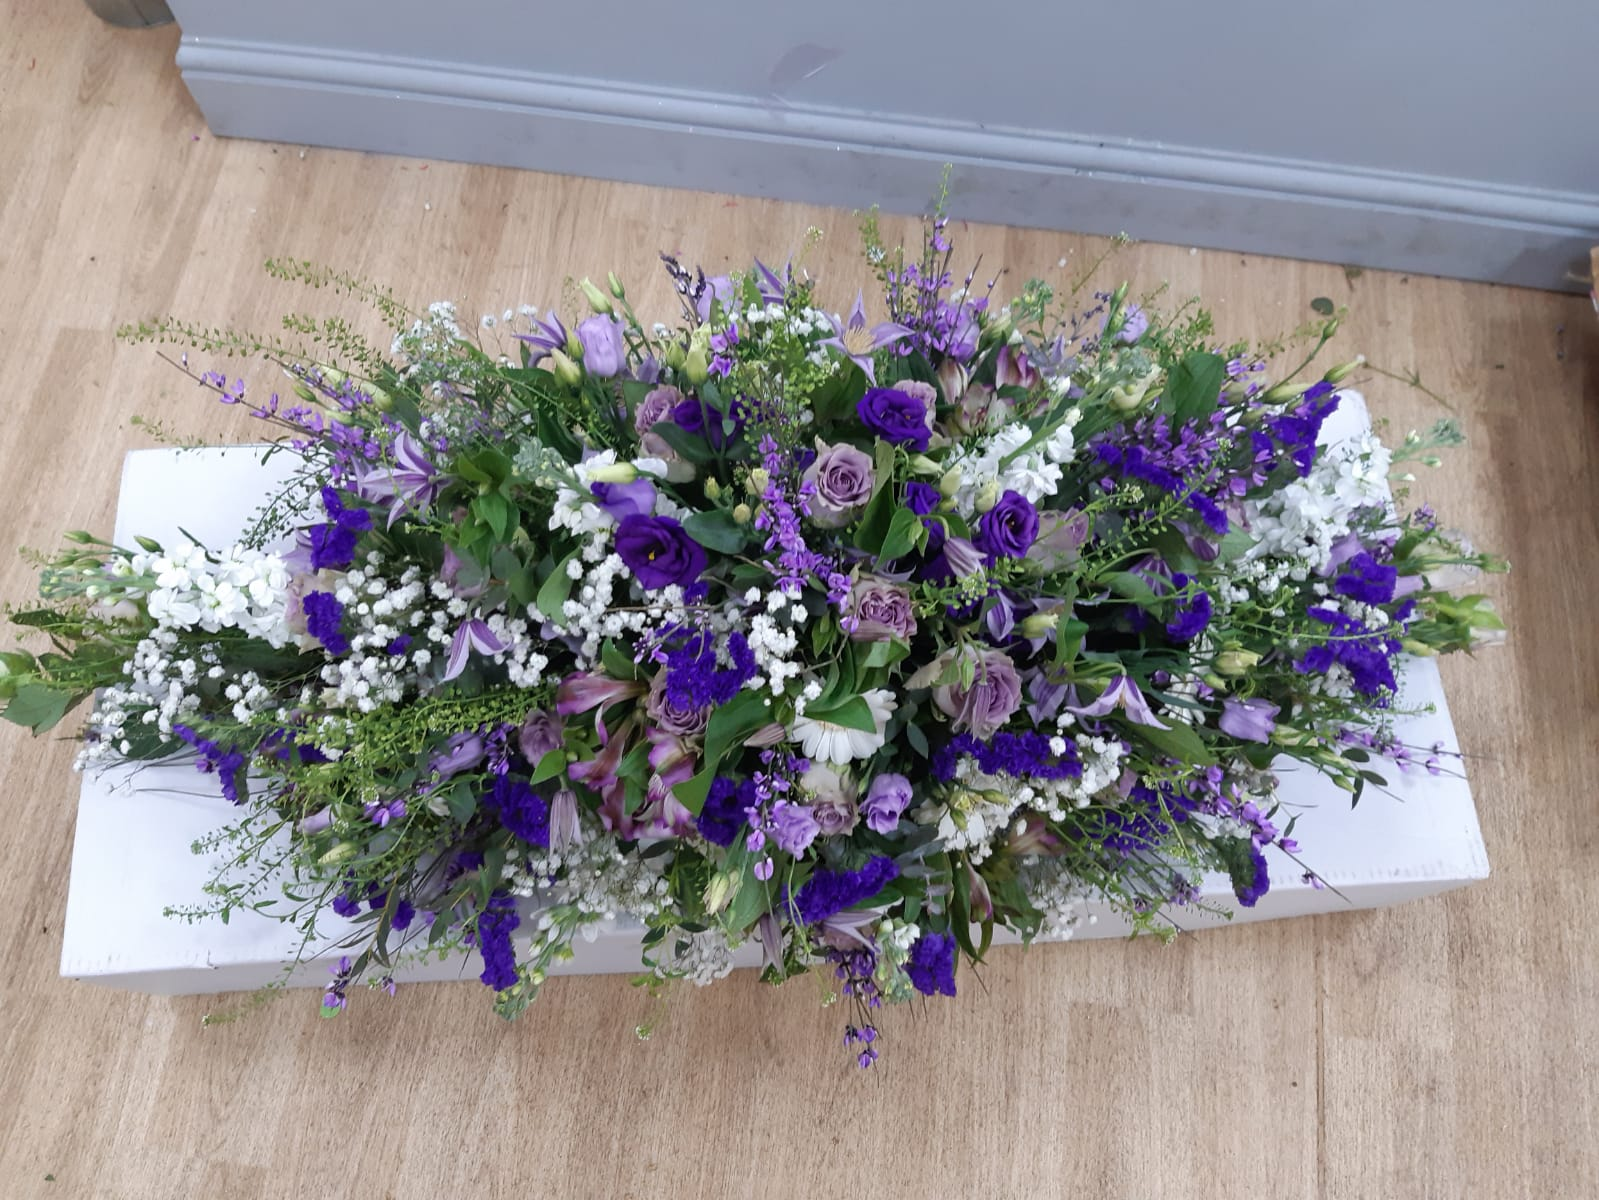 Funeral casket roses eustoma stock thlaspi clematis foliage statice broom germini